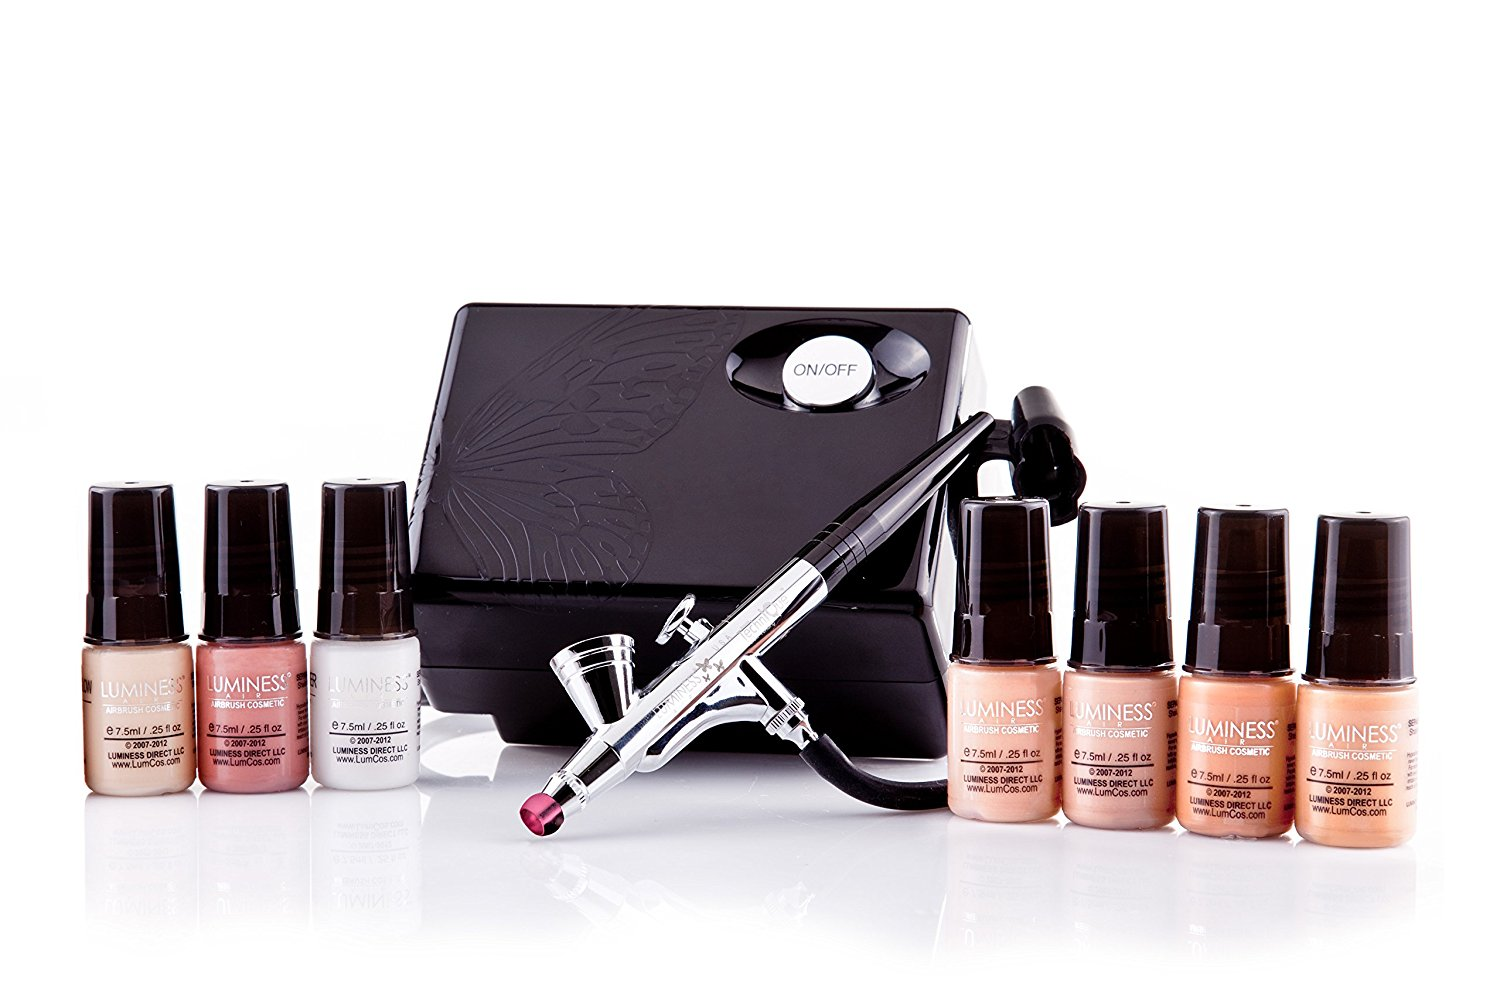 10 Best Airbrush Makeup Kits | Airbrush Makeup Reviews